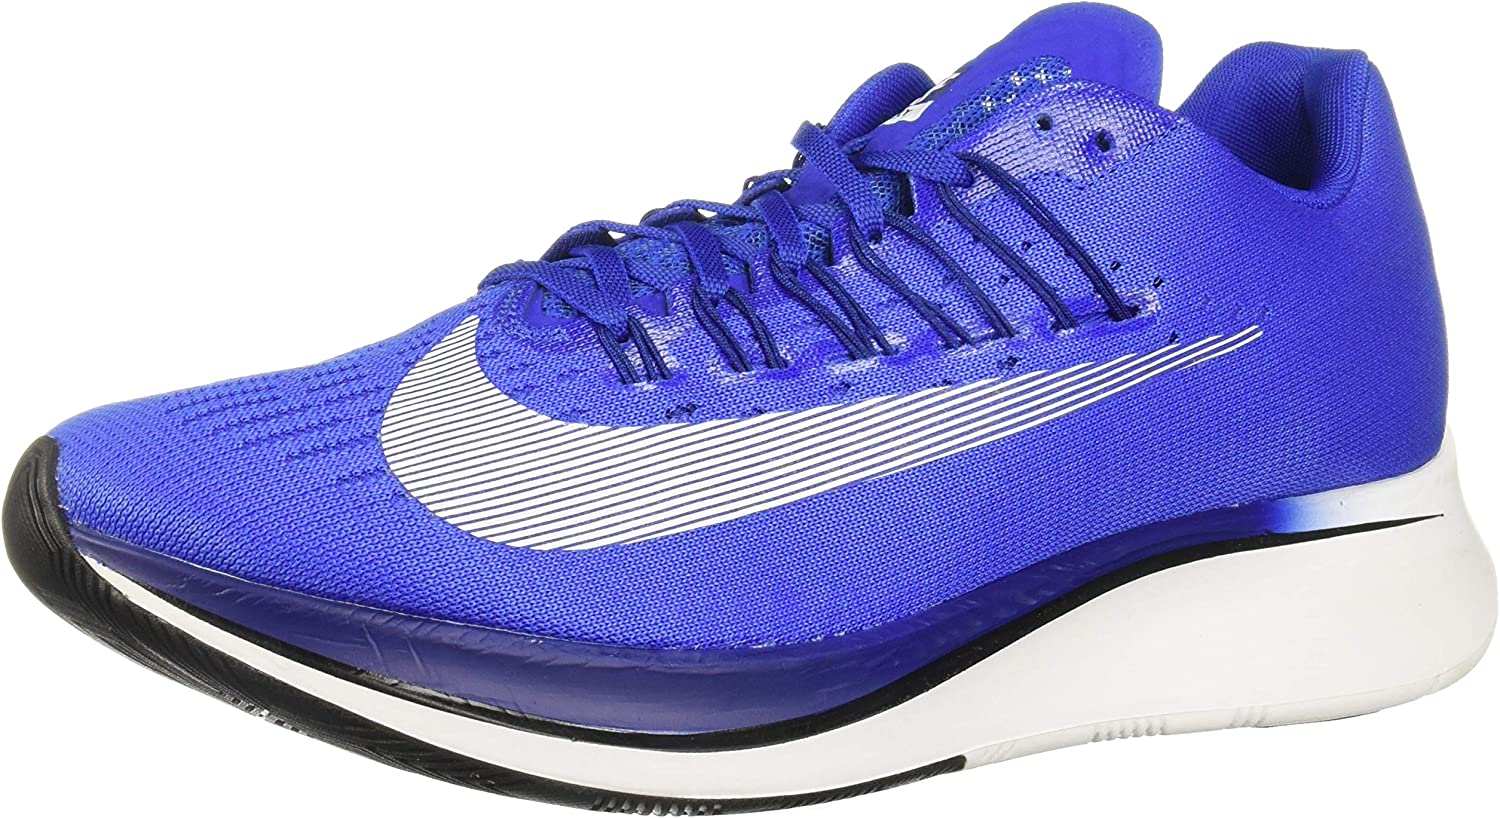 Nike Men s Zoom Fly Running Shoe Hyper Royal White-DEEP Royal Blue-Black 11.0